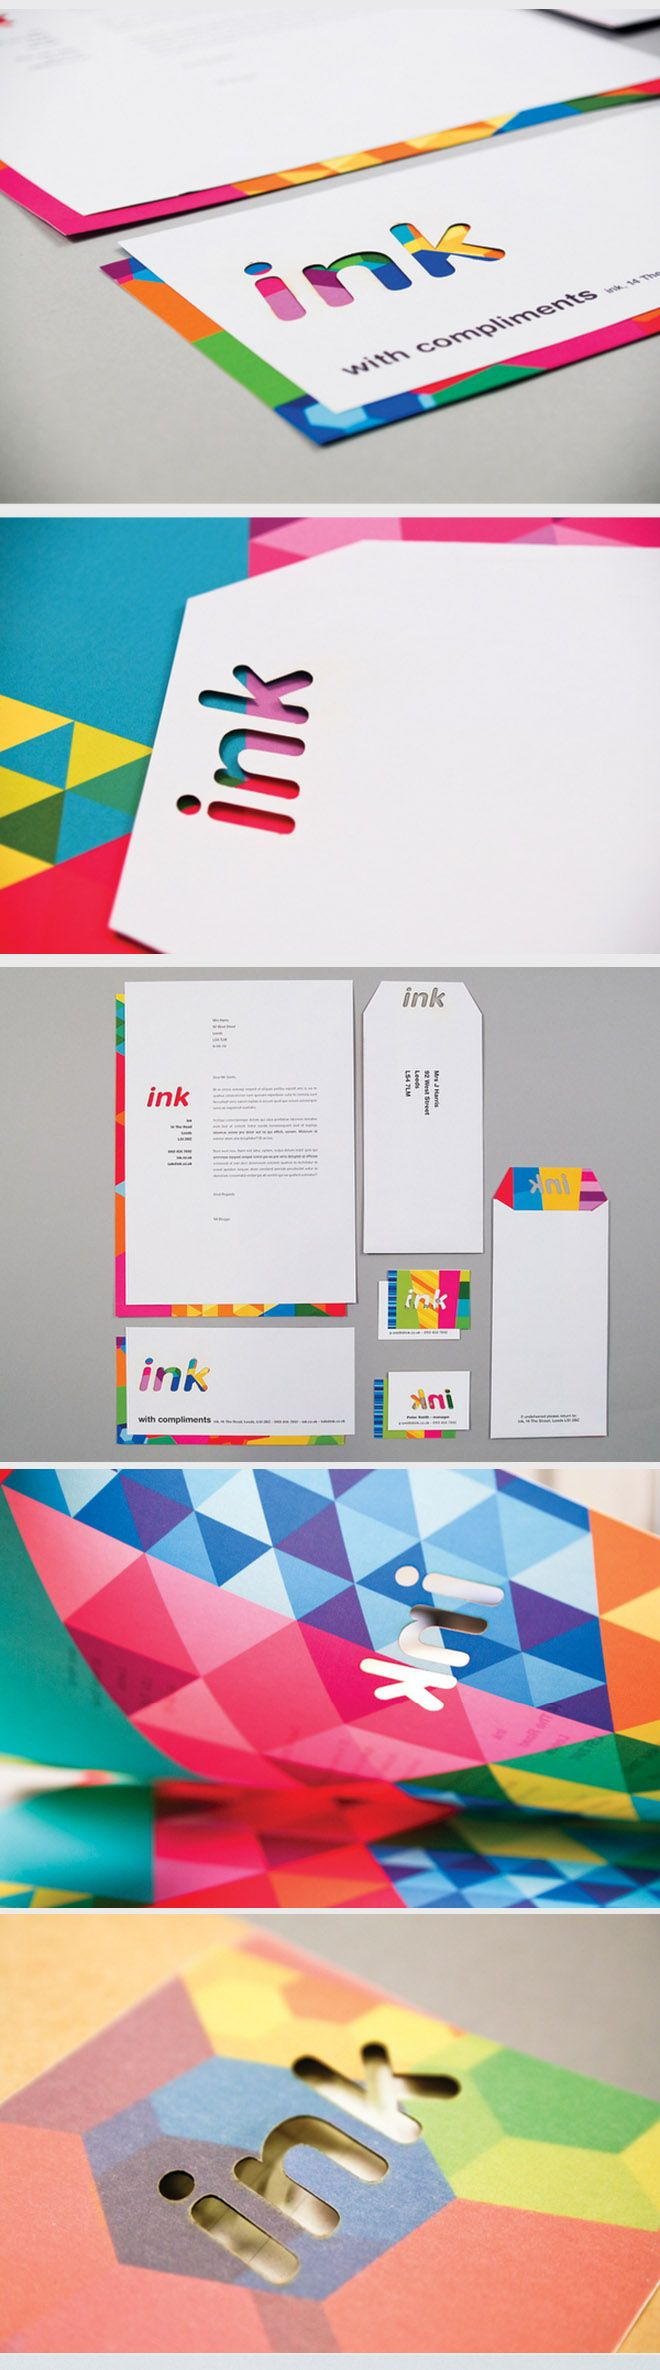 35 Creative and Beautiful Branding Identity Design examples. Follow us www.pinterest.com/webneel